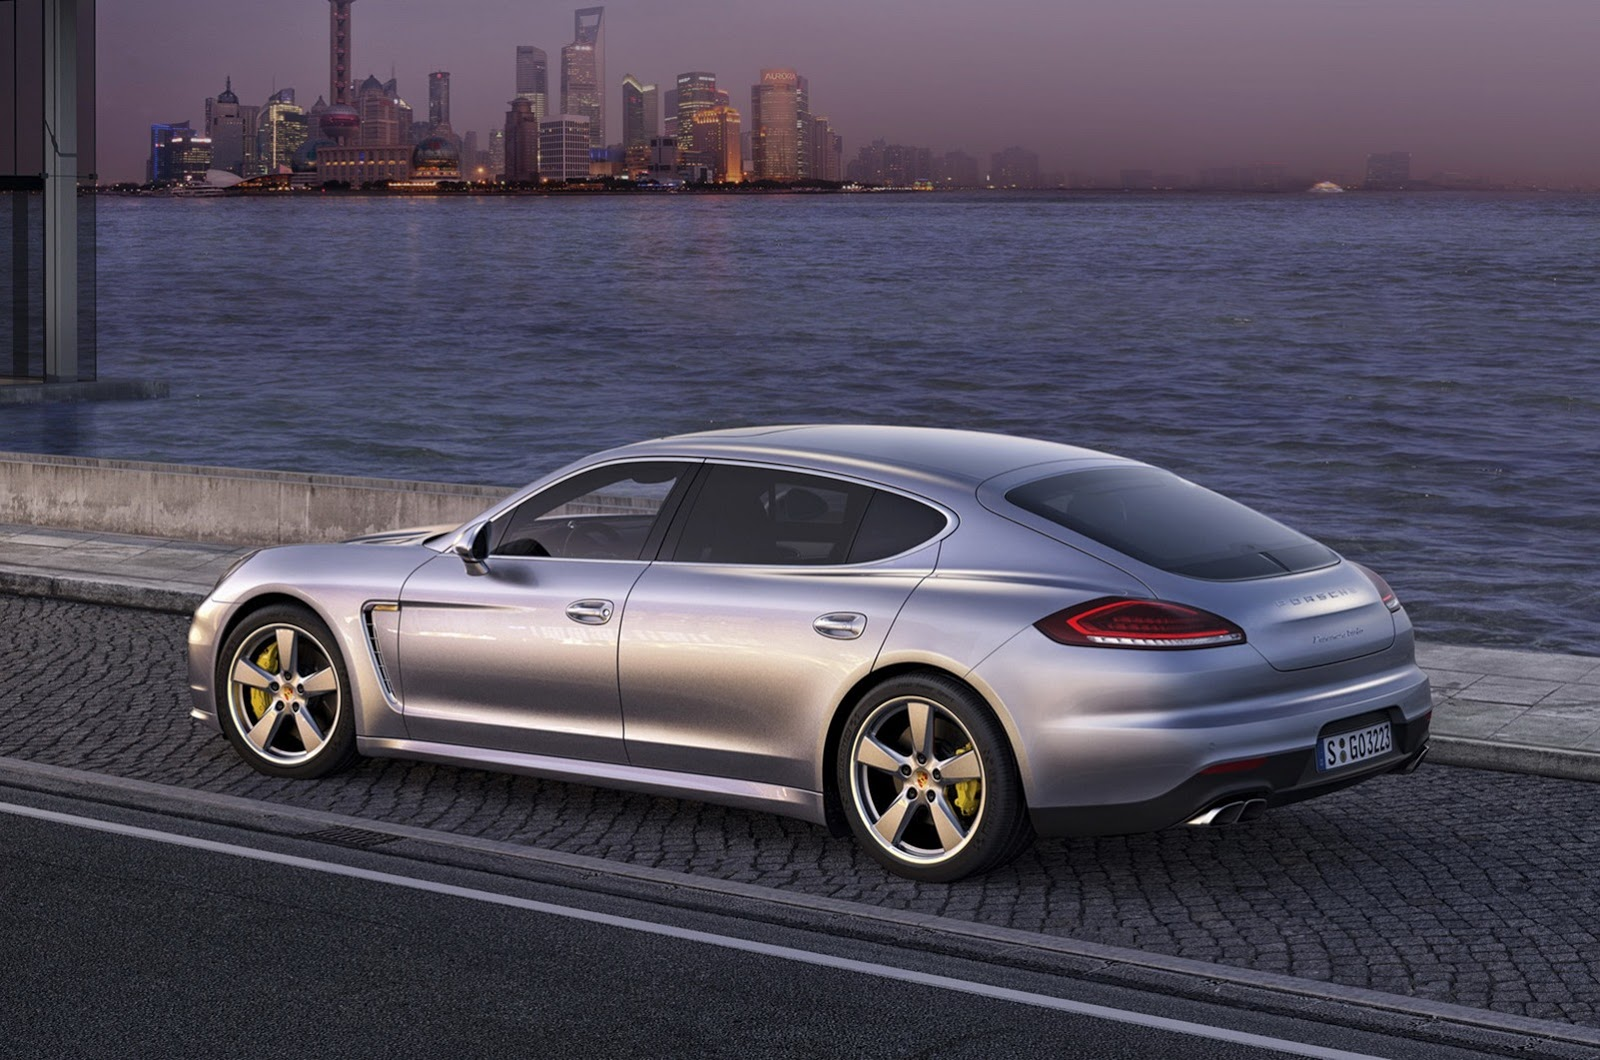 2014 Porsche Panamera Facelift First Photos Leaked